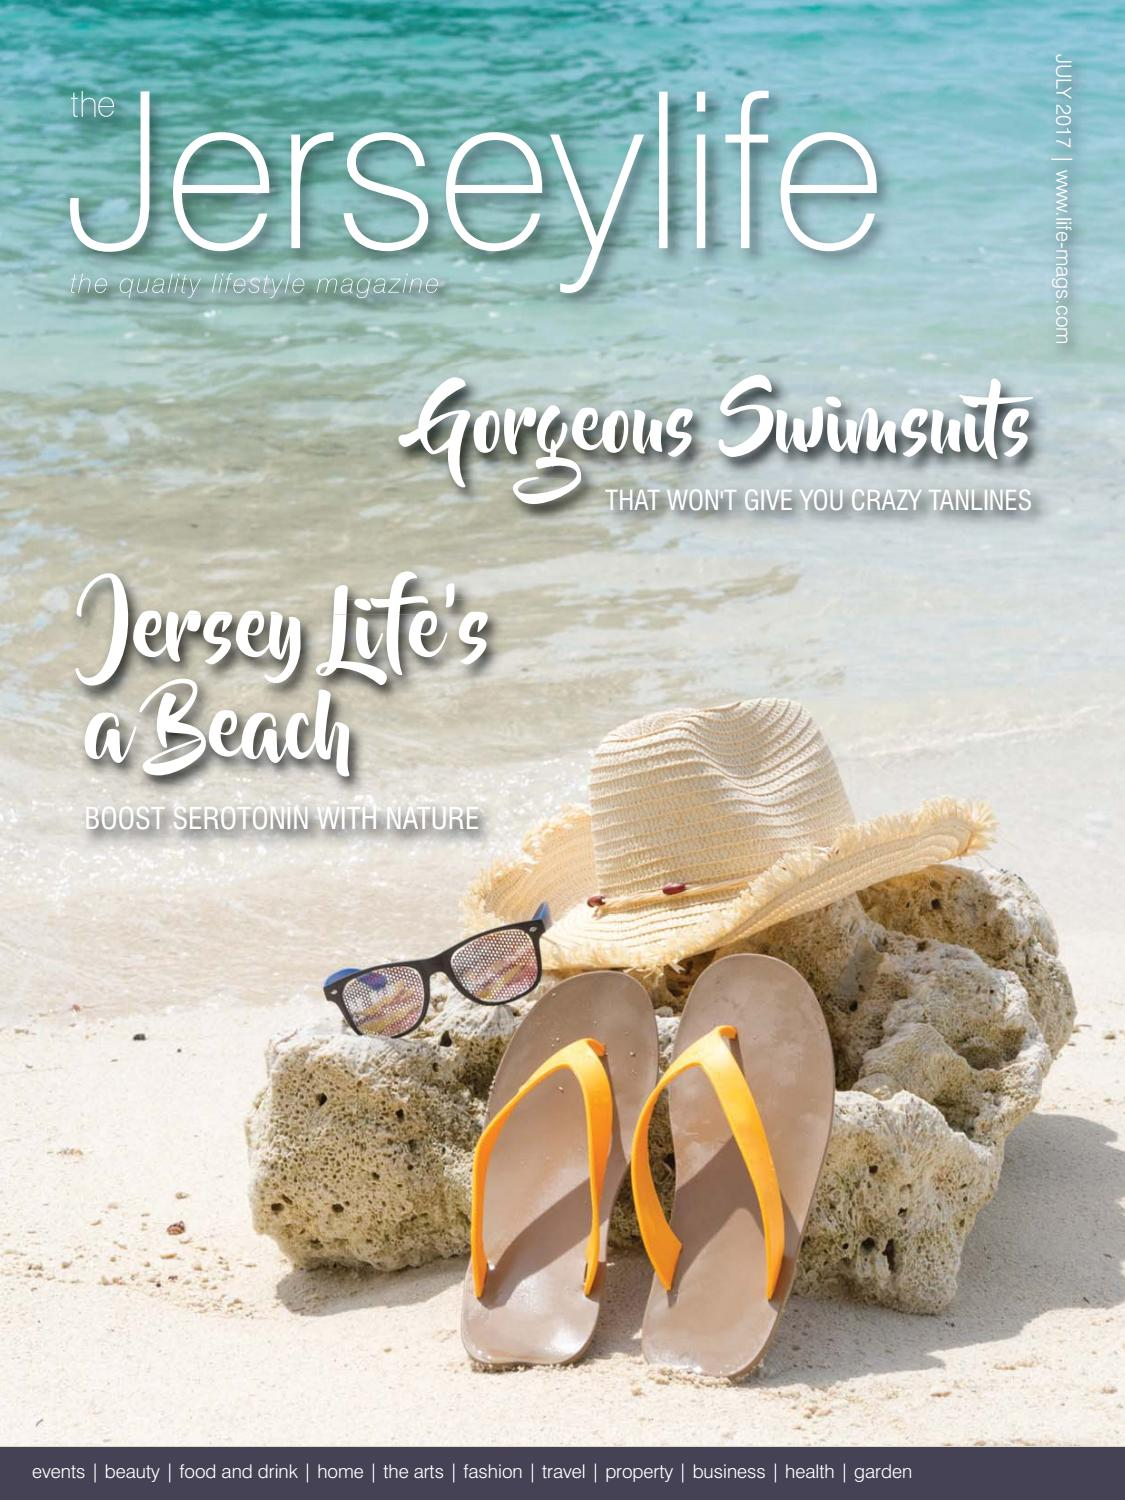 b20c46803 THE JERSEY LIFE - JULY ISSUE by The Jersey Life - issuu